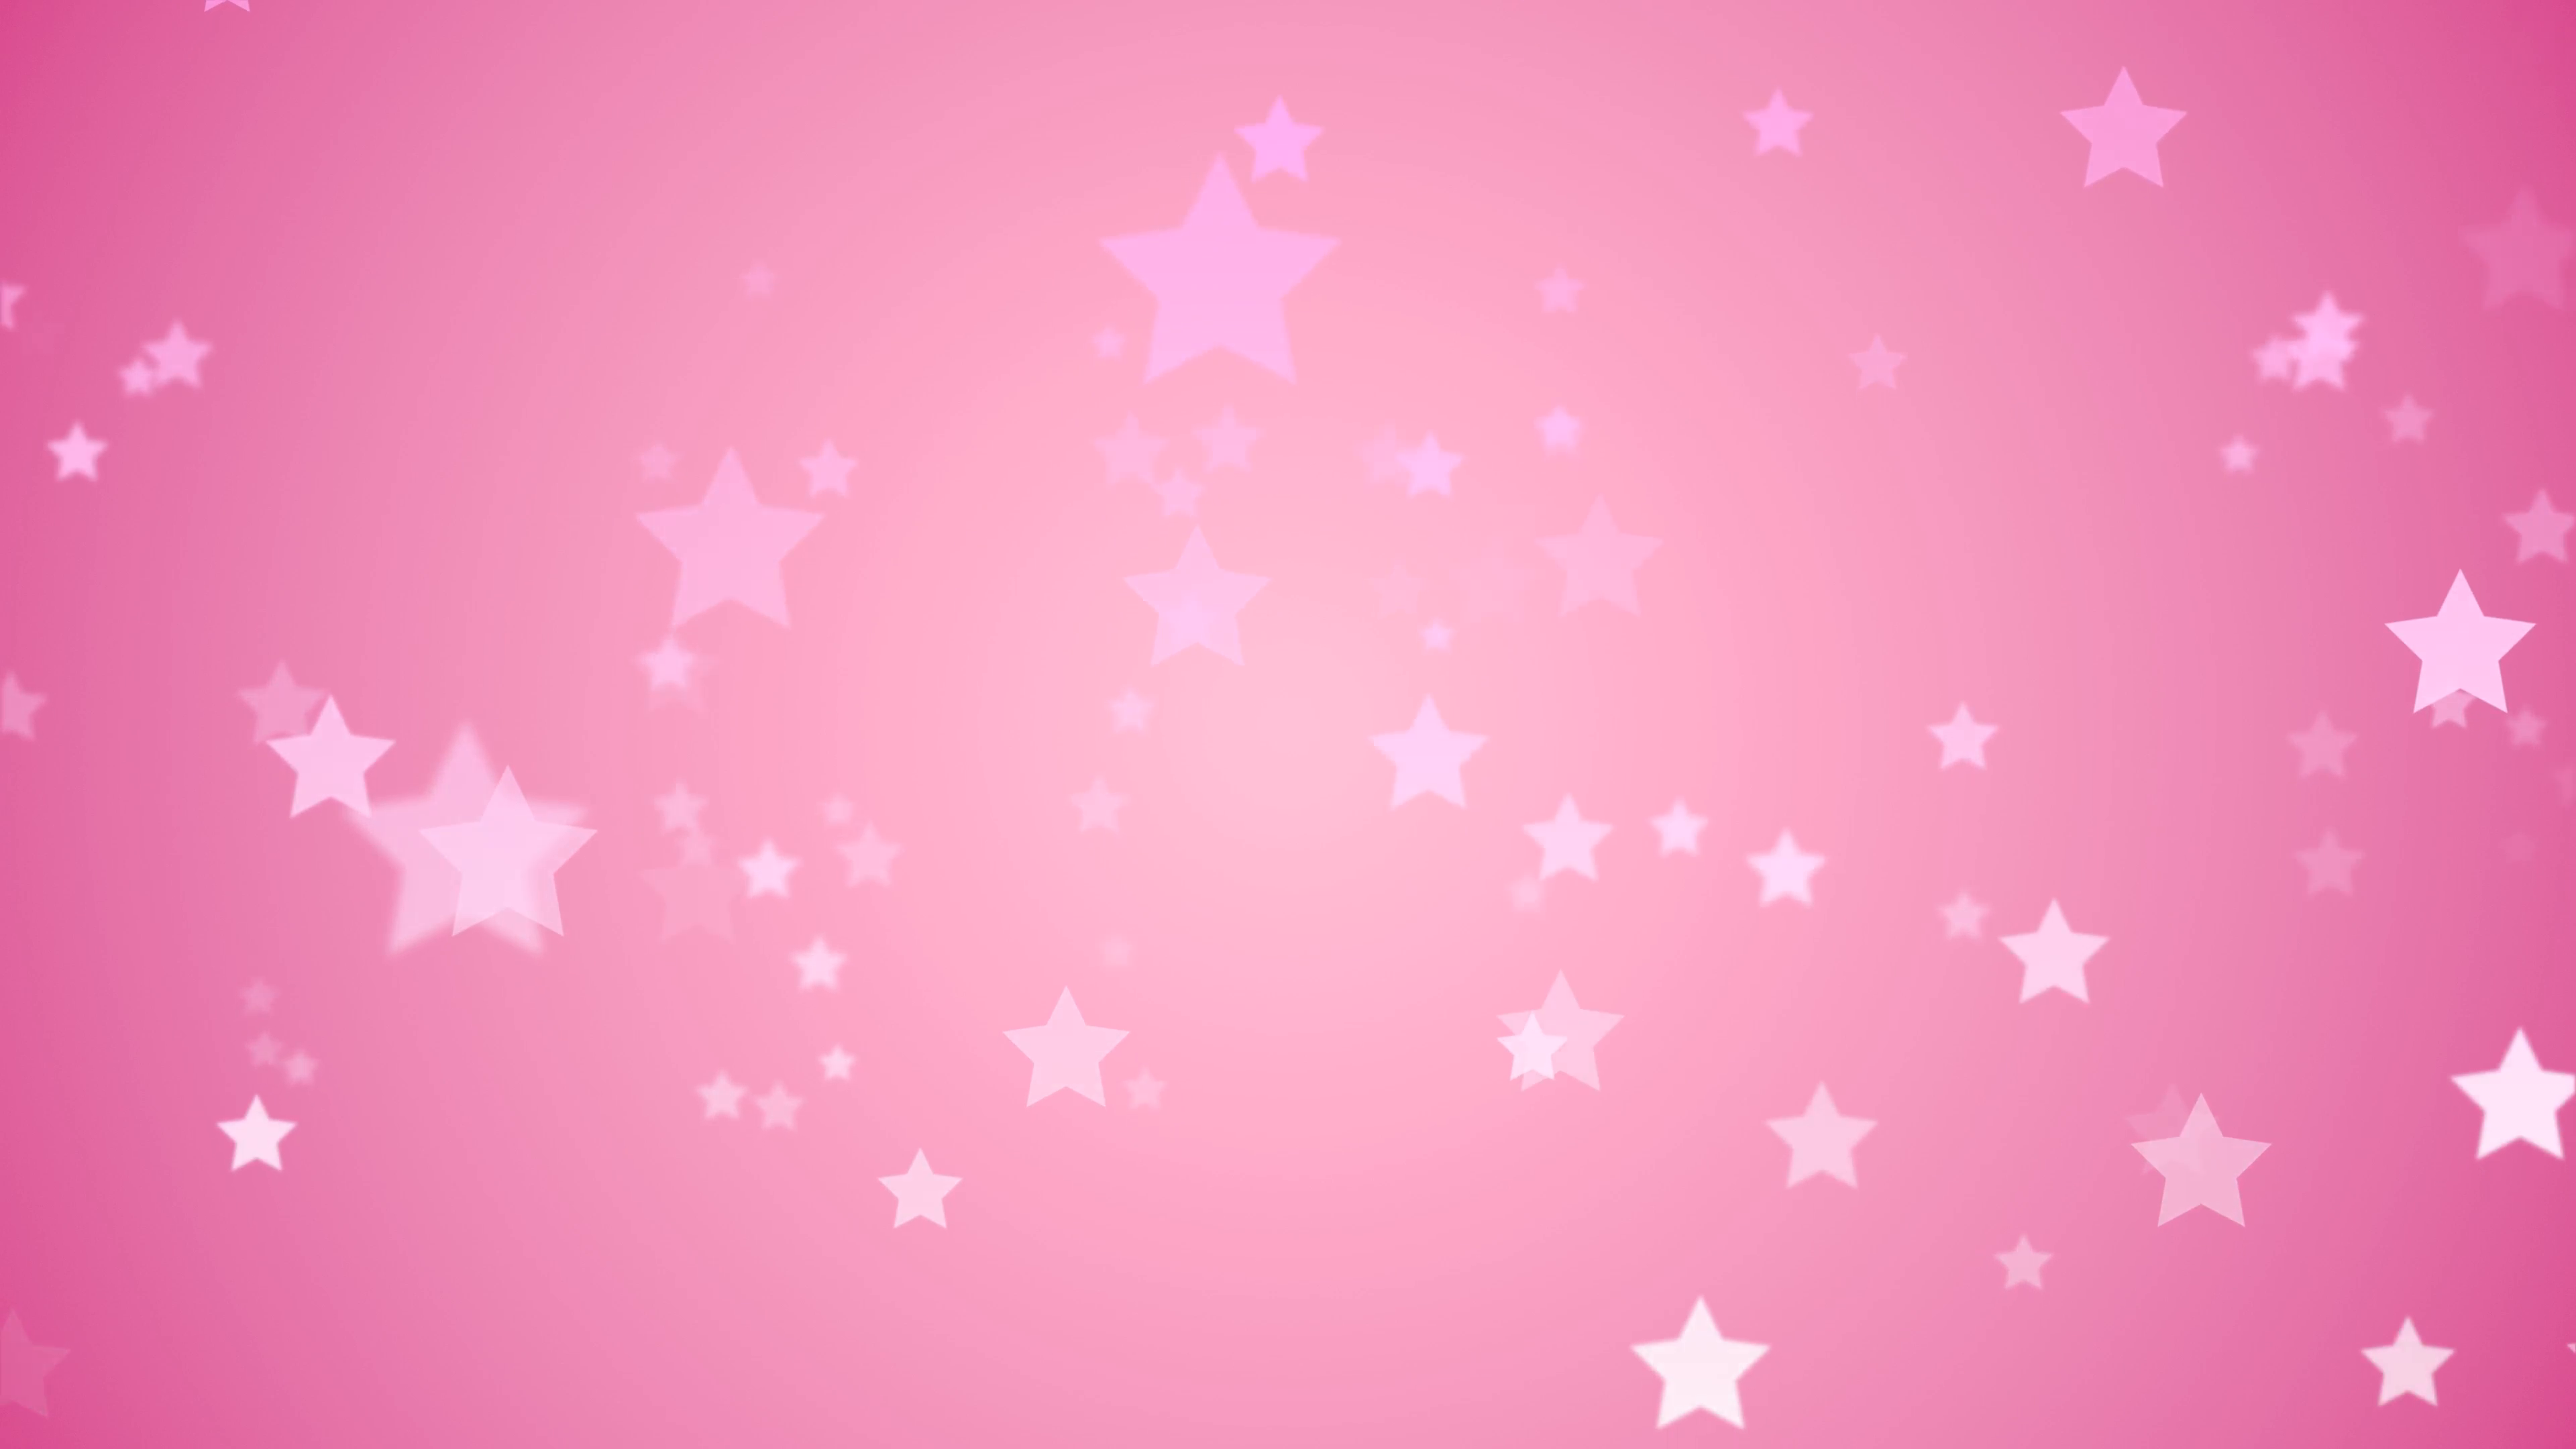 Background Pink Png - Pink Backgrounds Png - Wallpaper Cave